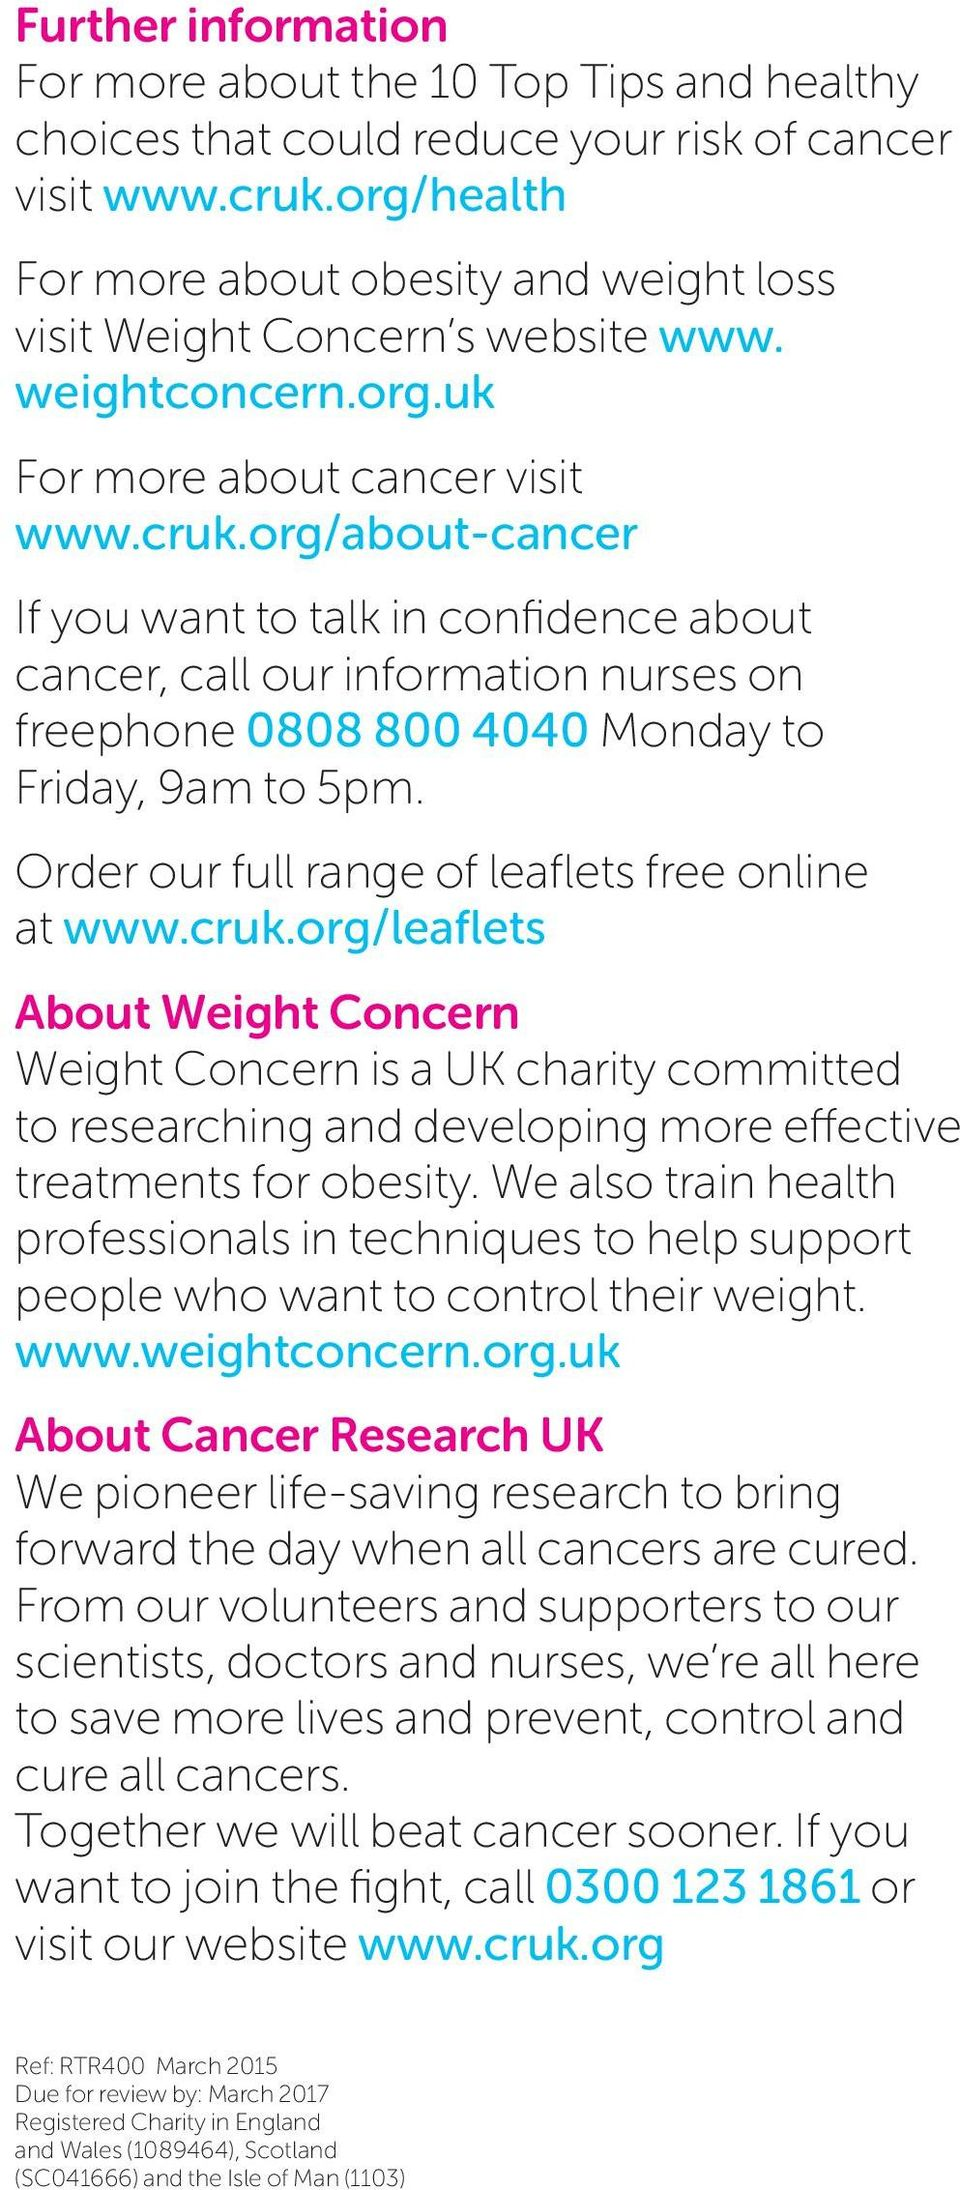 org/about-cancer If you want to talk in confidence about cancer, call our information nurses on freephone 0808 800 4040 Monday to Friday, 9am to 5pm.